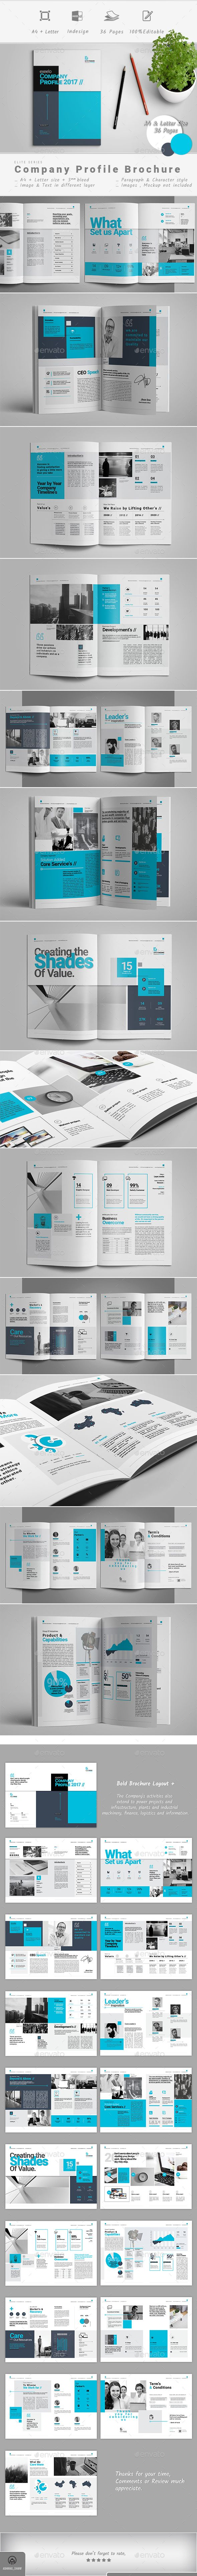 Company Profile Brochure Template InDesign INDD - 36 Pages, A4 & US Letter Size